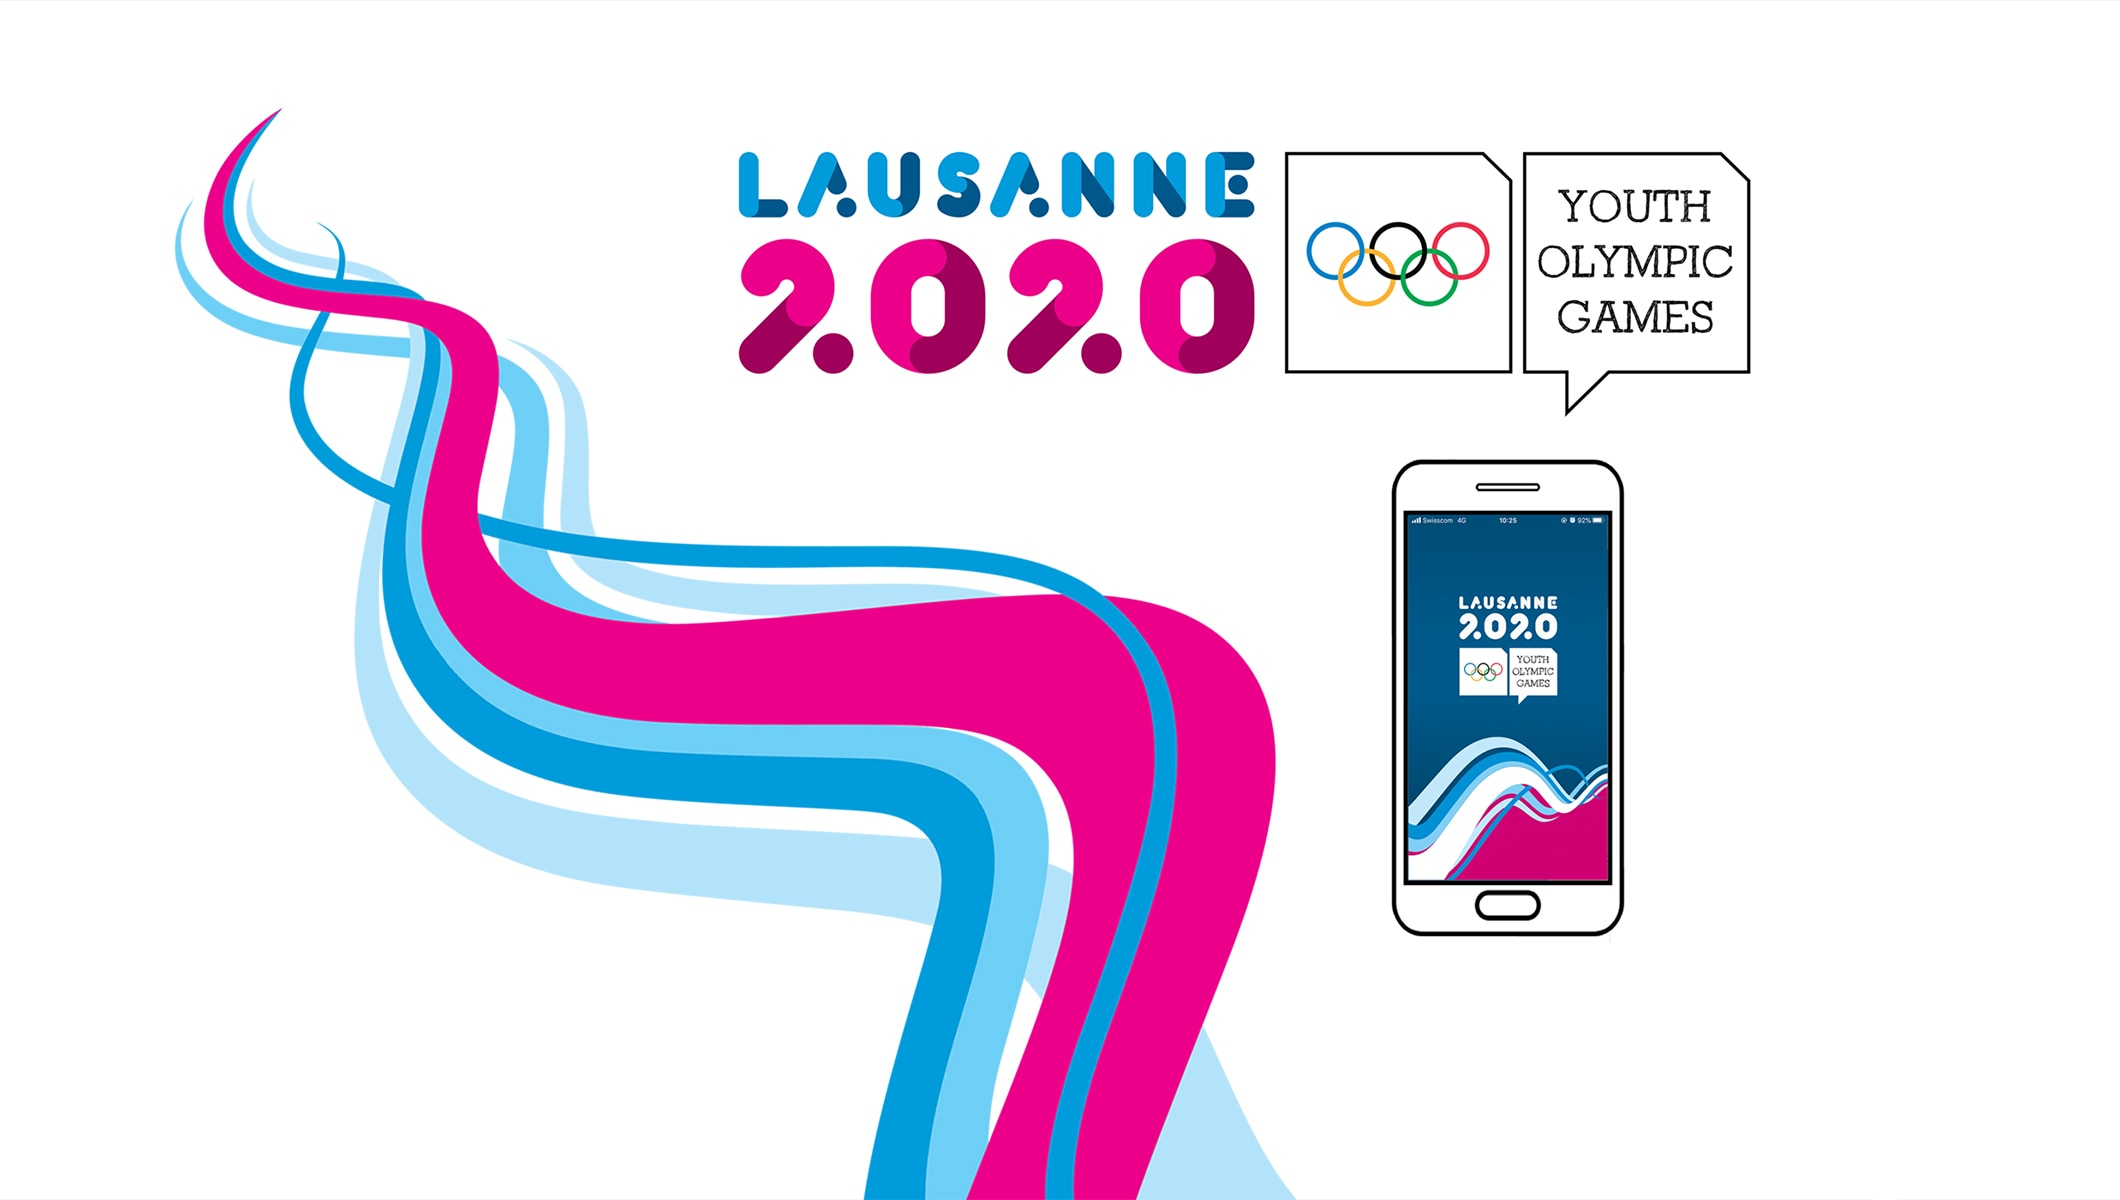 Download the Lausanne 2020 app to catch all the live action, highlights and so much more! - Olympic News - Olympics